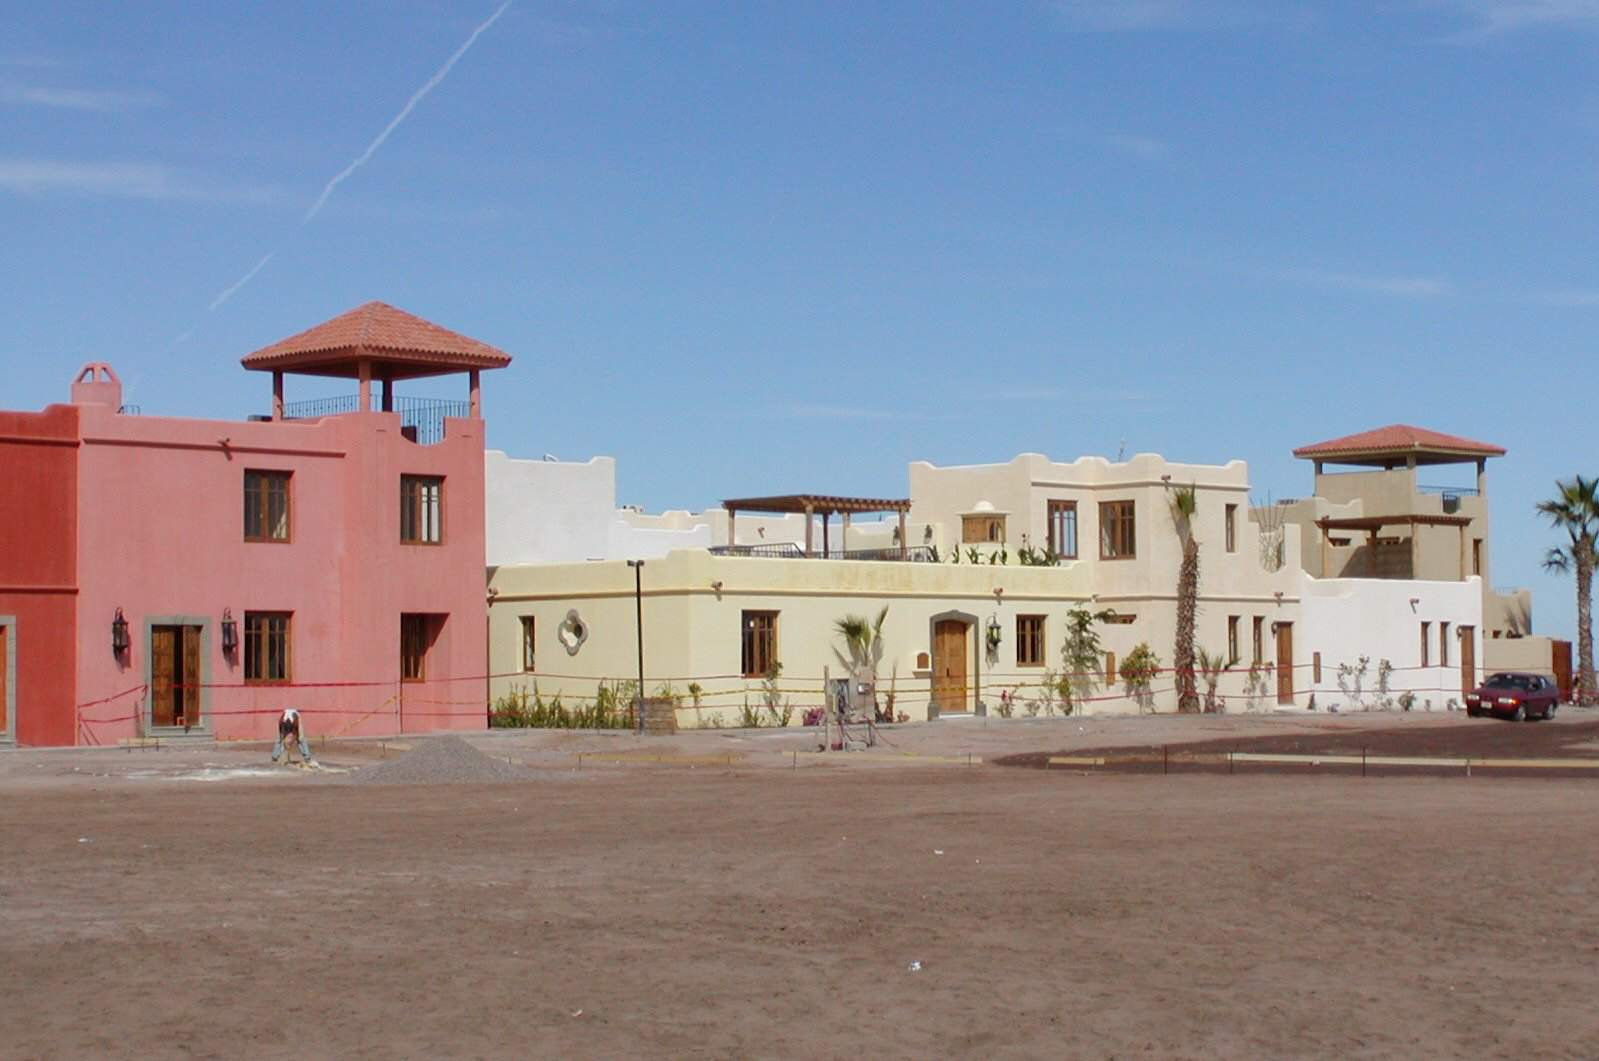 street photo of colorful earthen buildings in a Spanish style